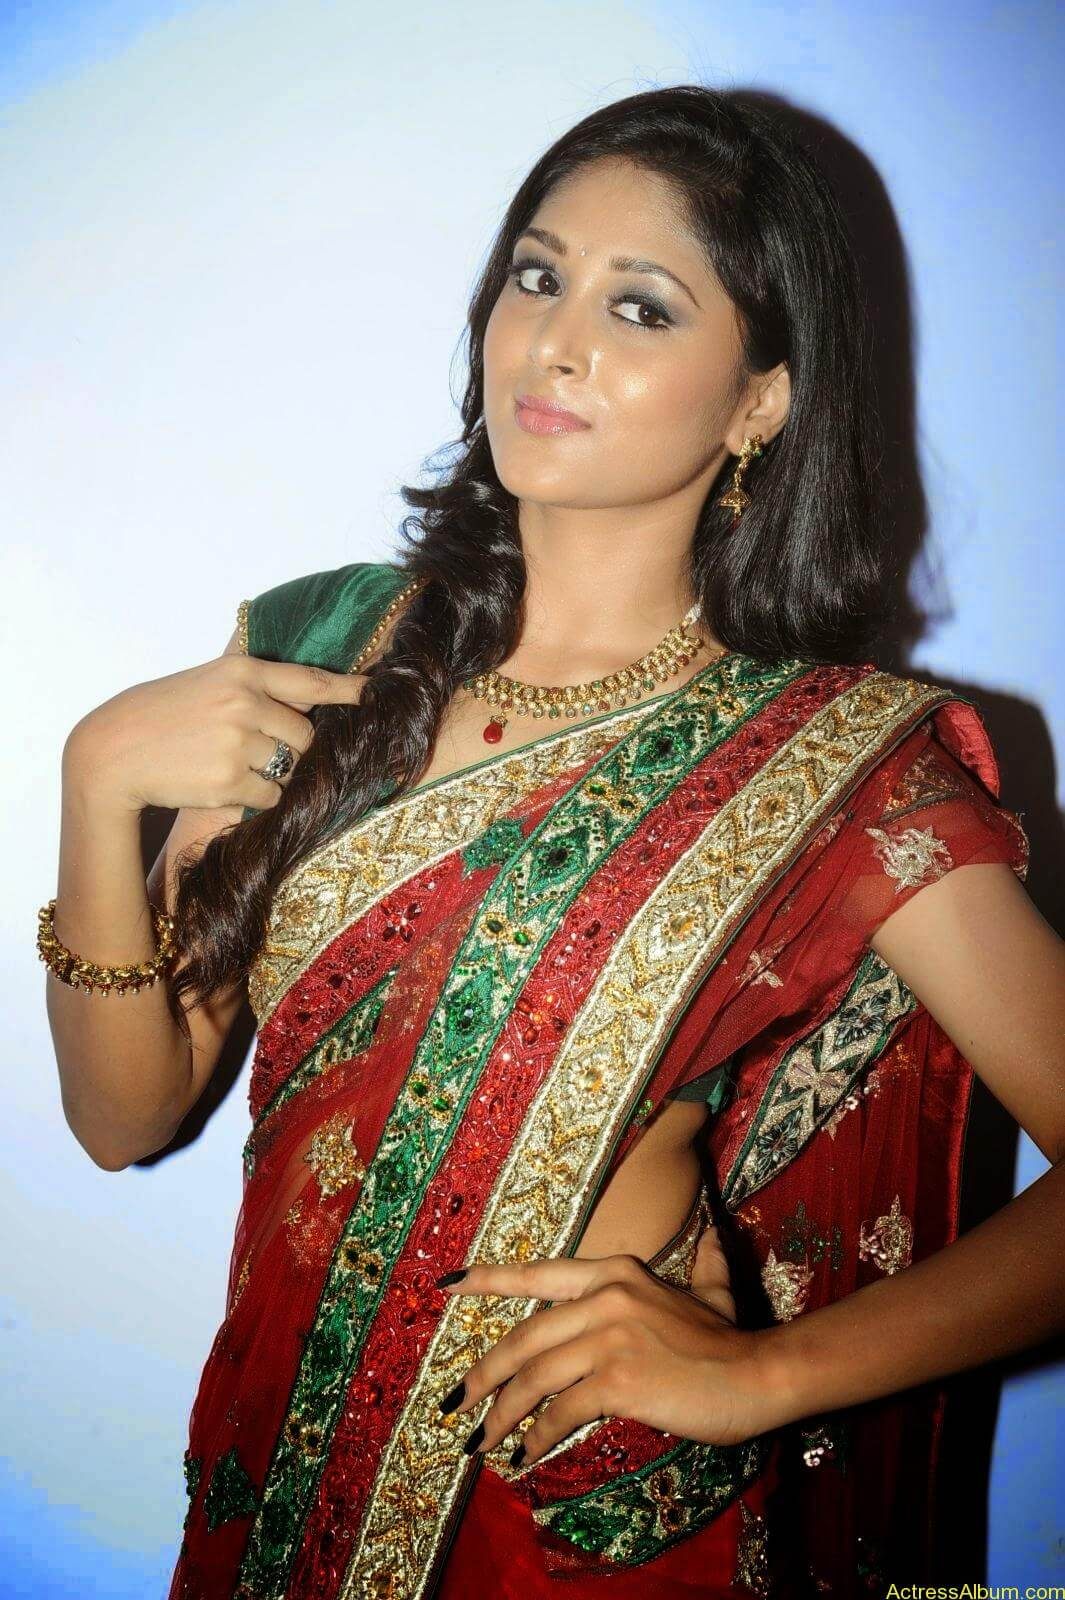 Sushma Raj Hot Navel Pics In Transparent Saree Photos2